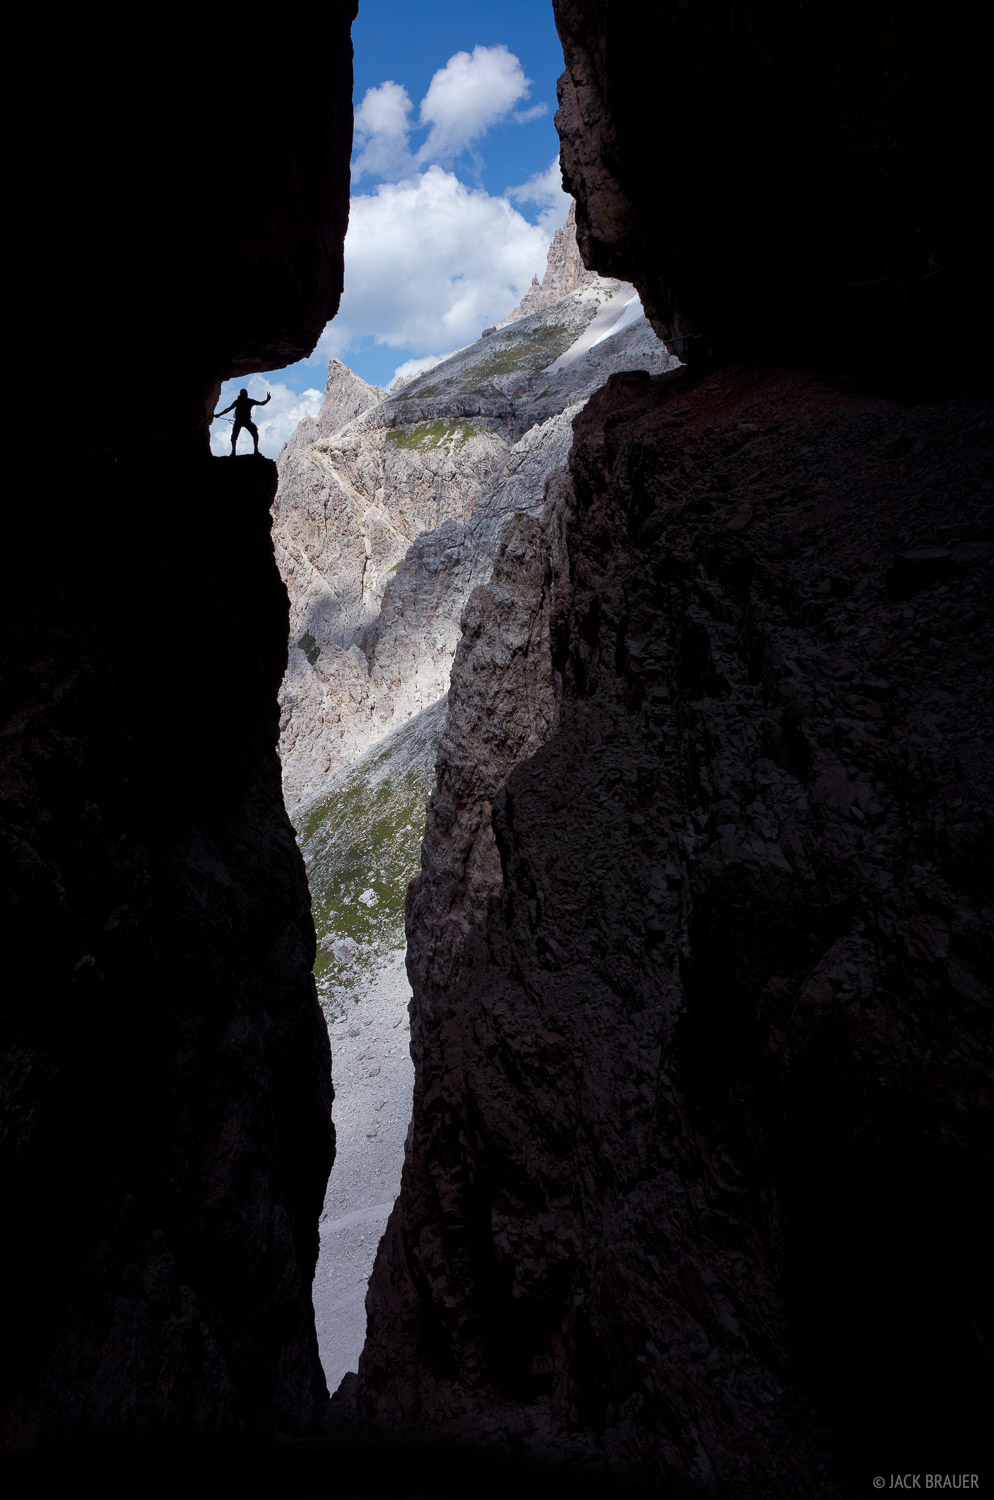 Dolomites, Italy, via ferrata, Salvezza, Strada degli Alpini, photo